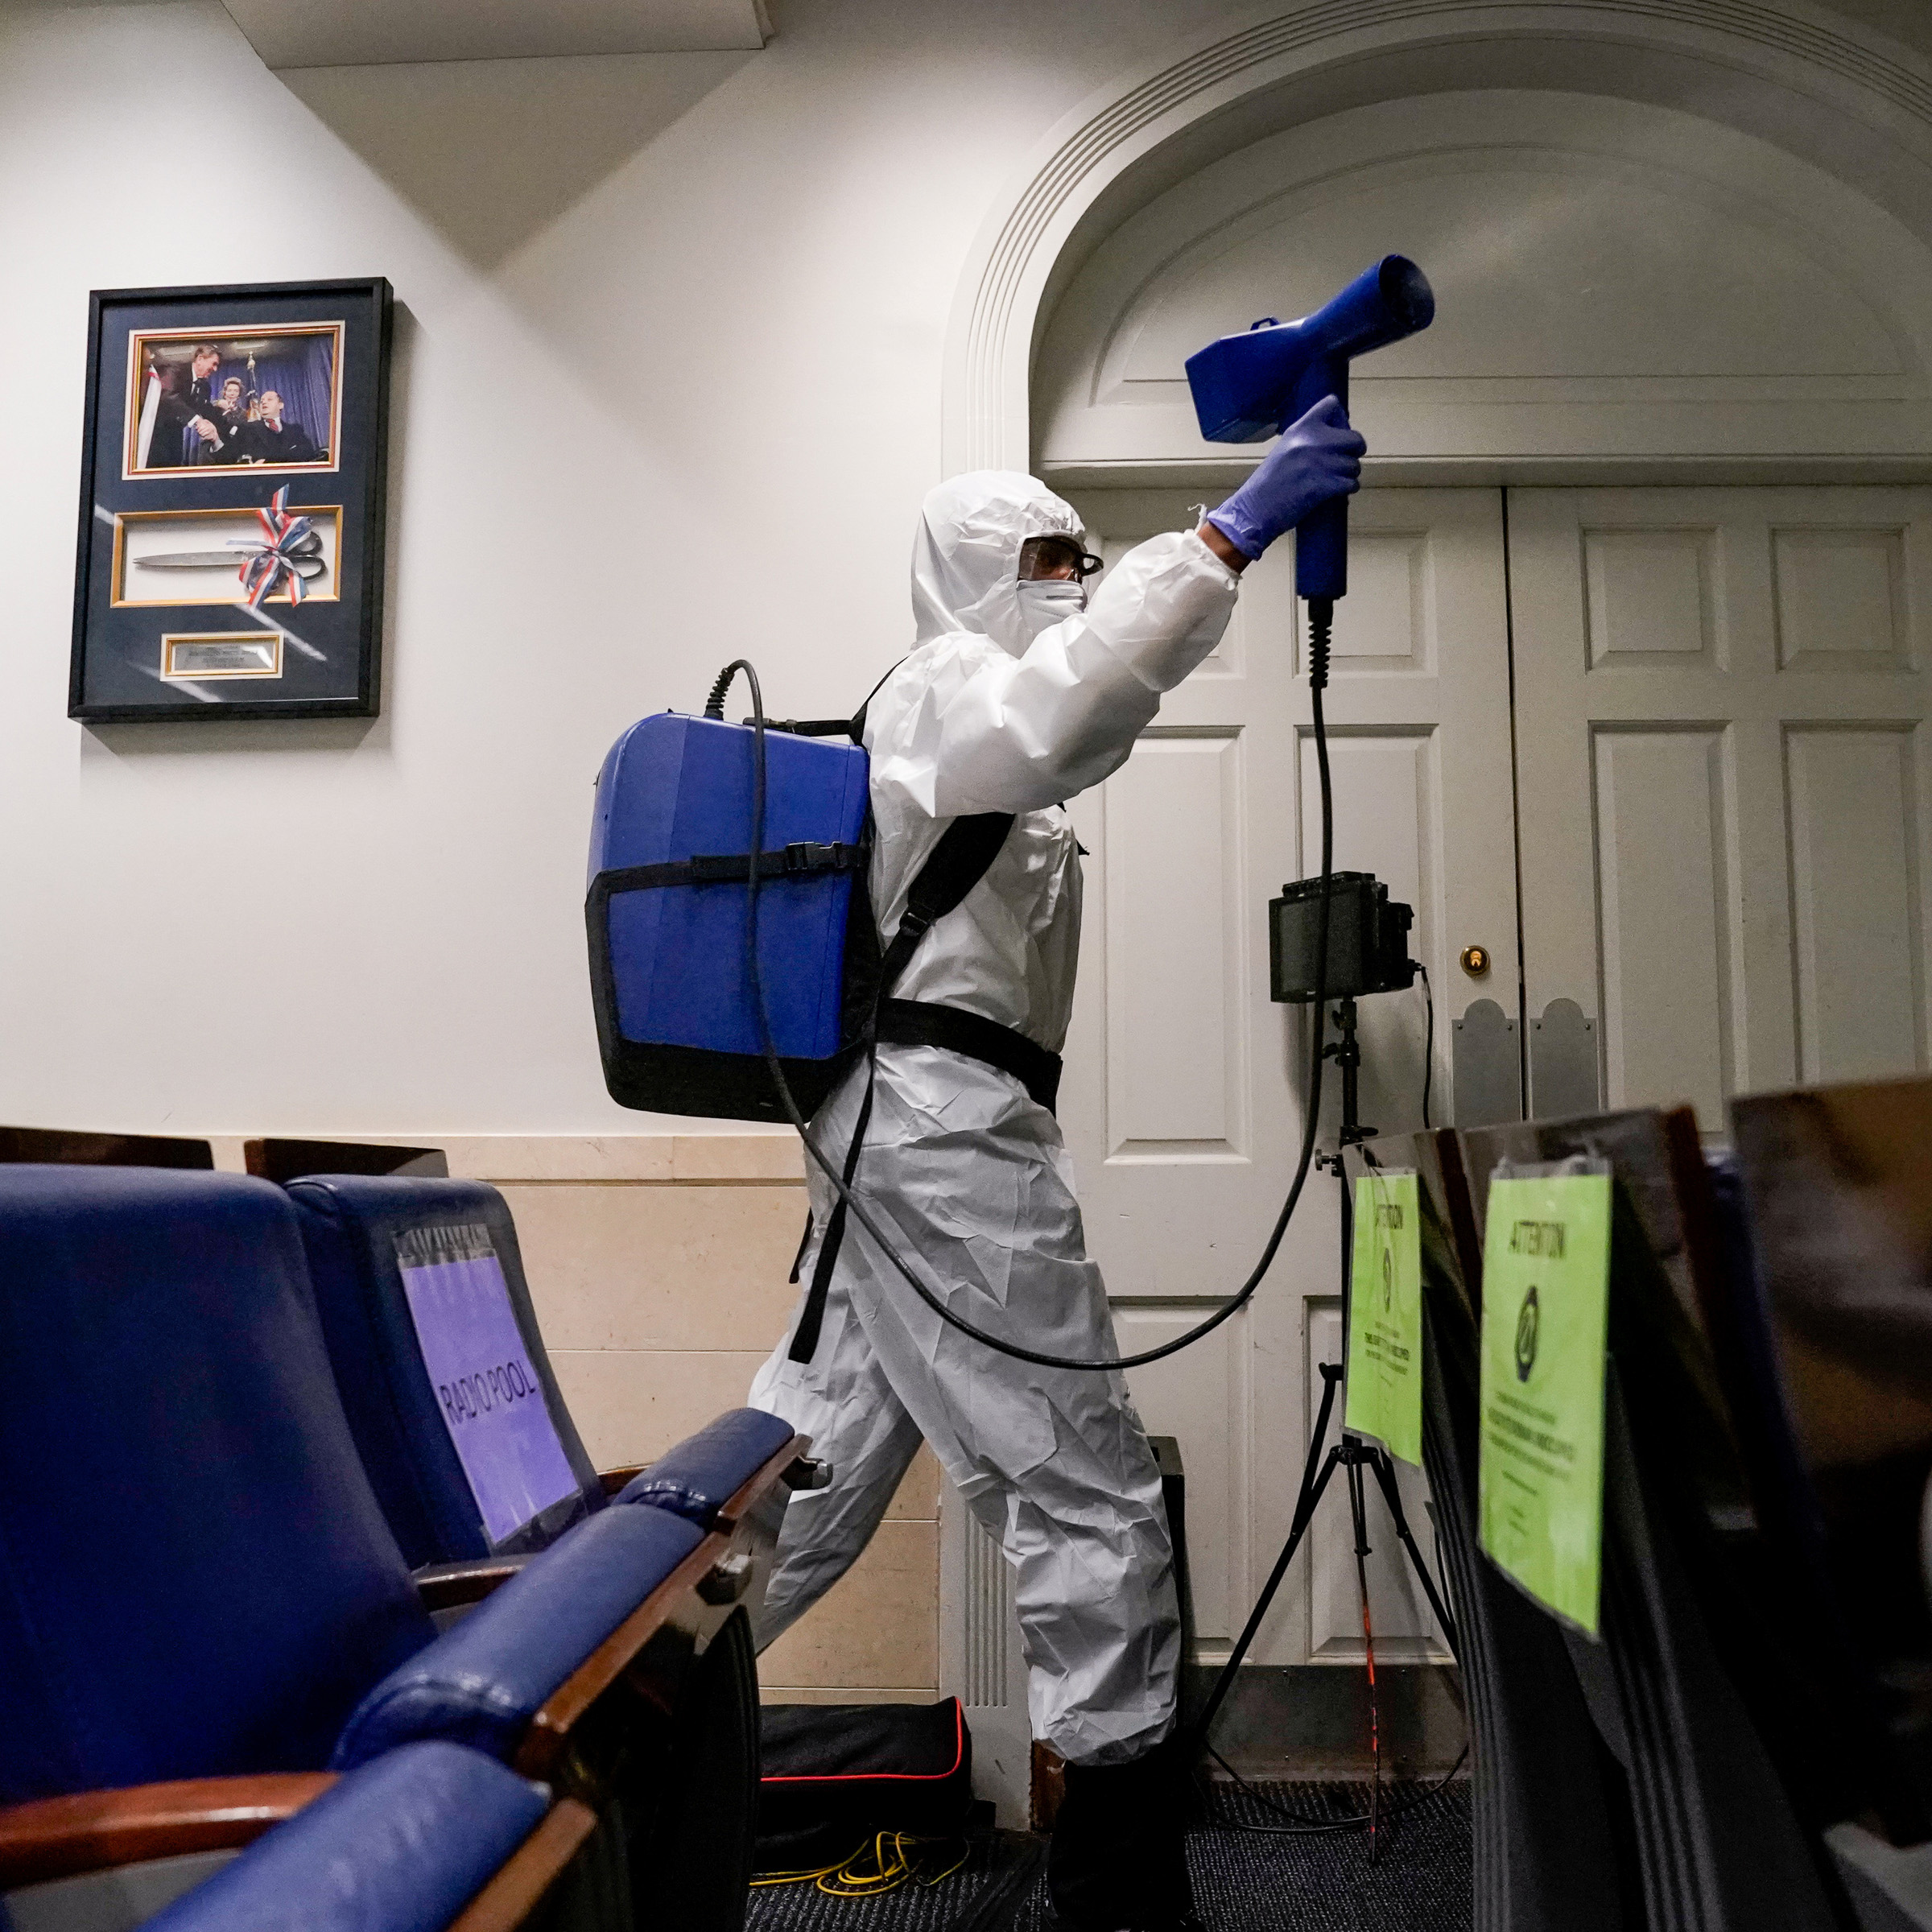 The White House press briefing room is cleaned on the evening U.S. President Donald Trump returns from Walter Reed Medical Center after contracting COVID-19, in Washington, DC, October 5, 2020